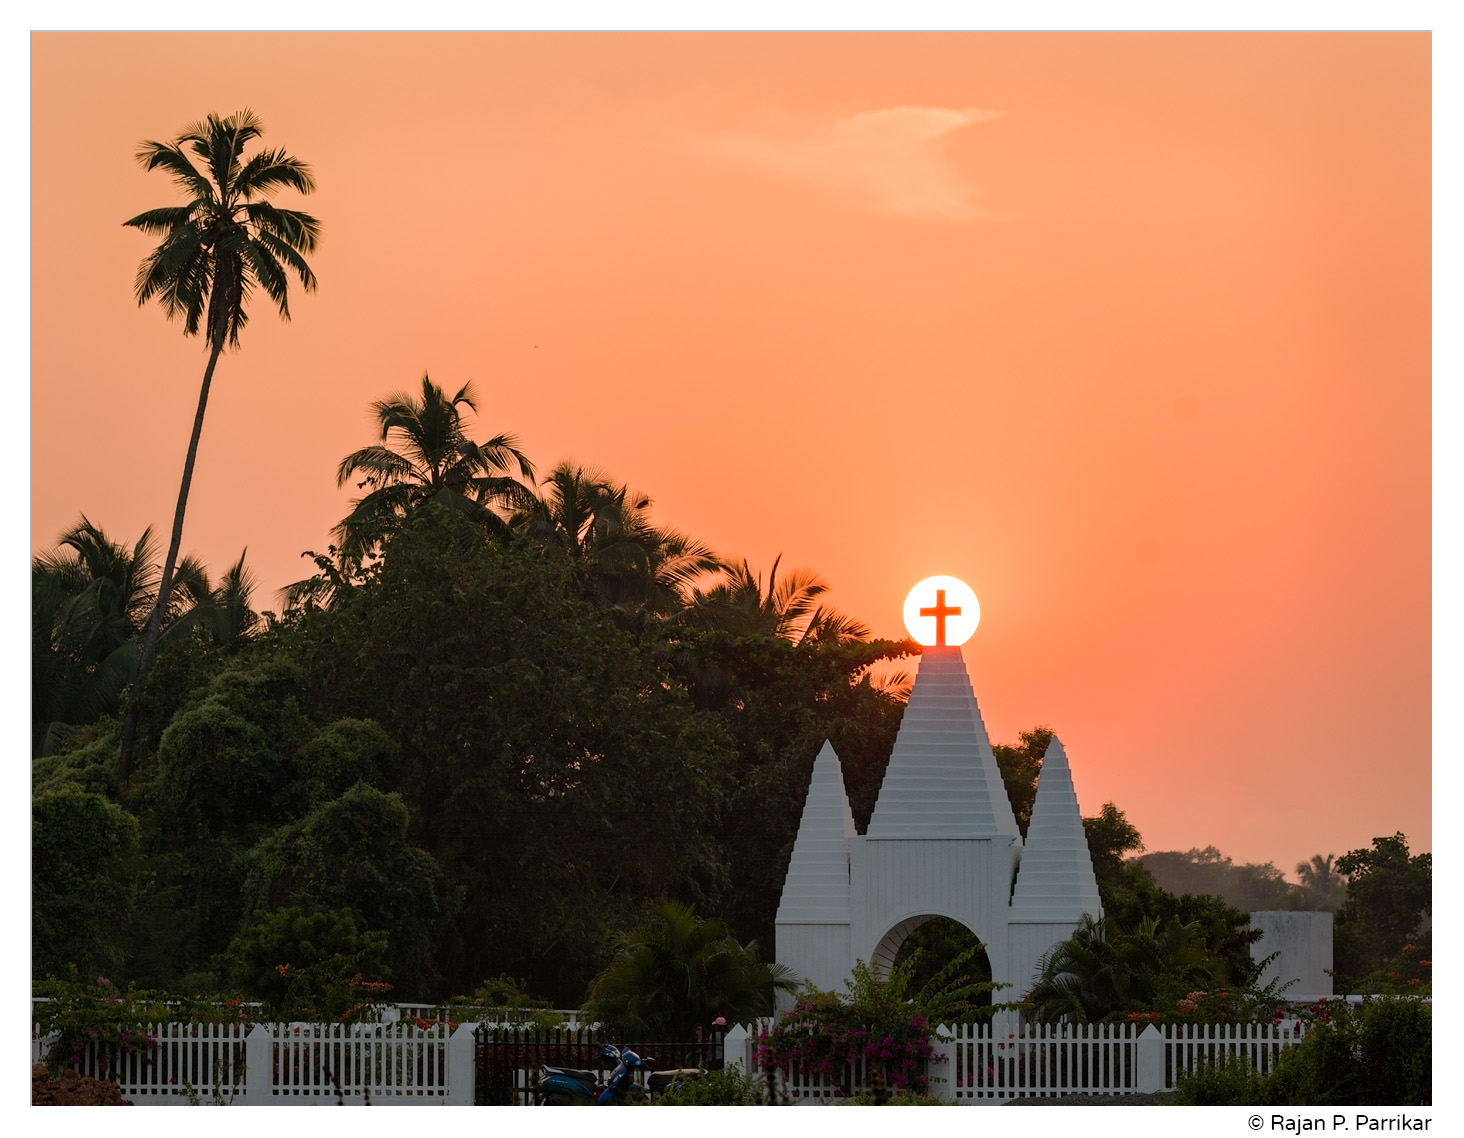 Sunset at Saligao cemetery, Goa